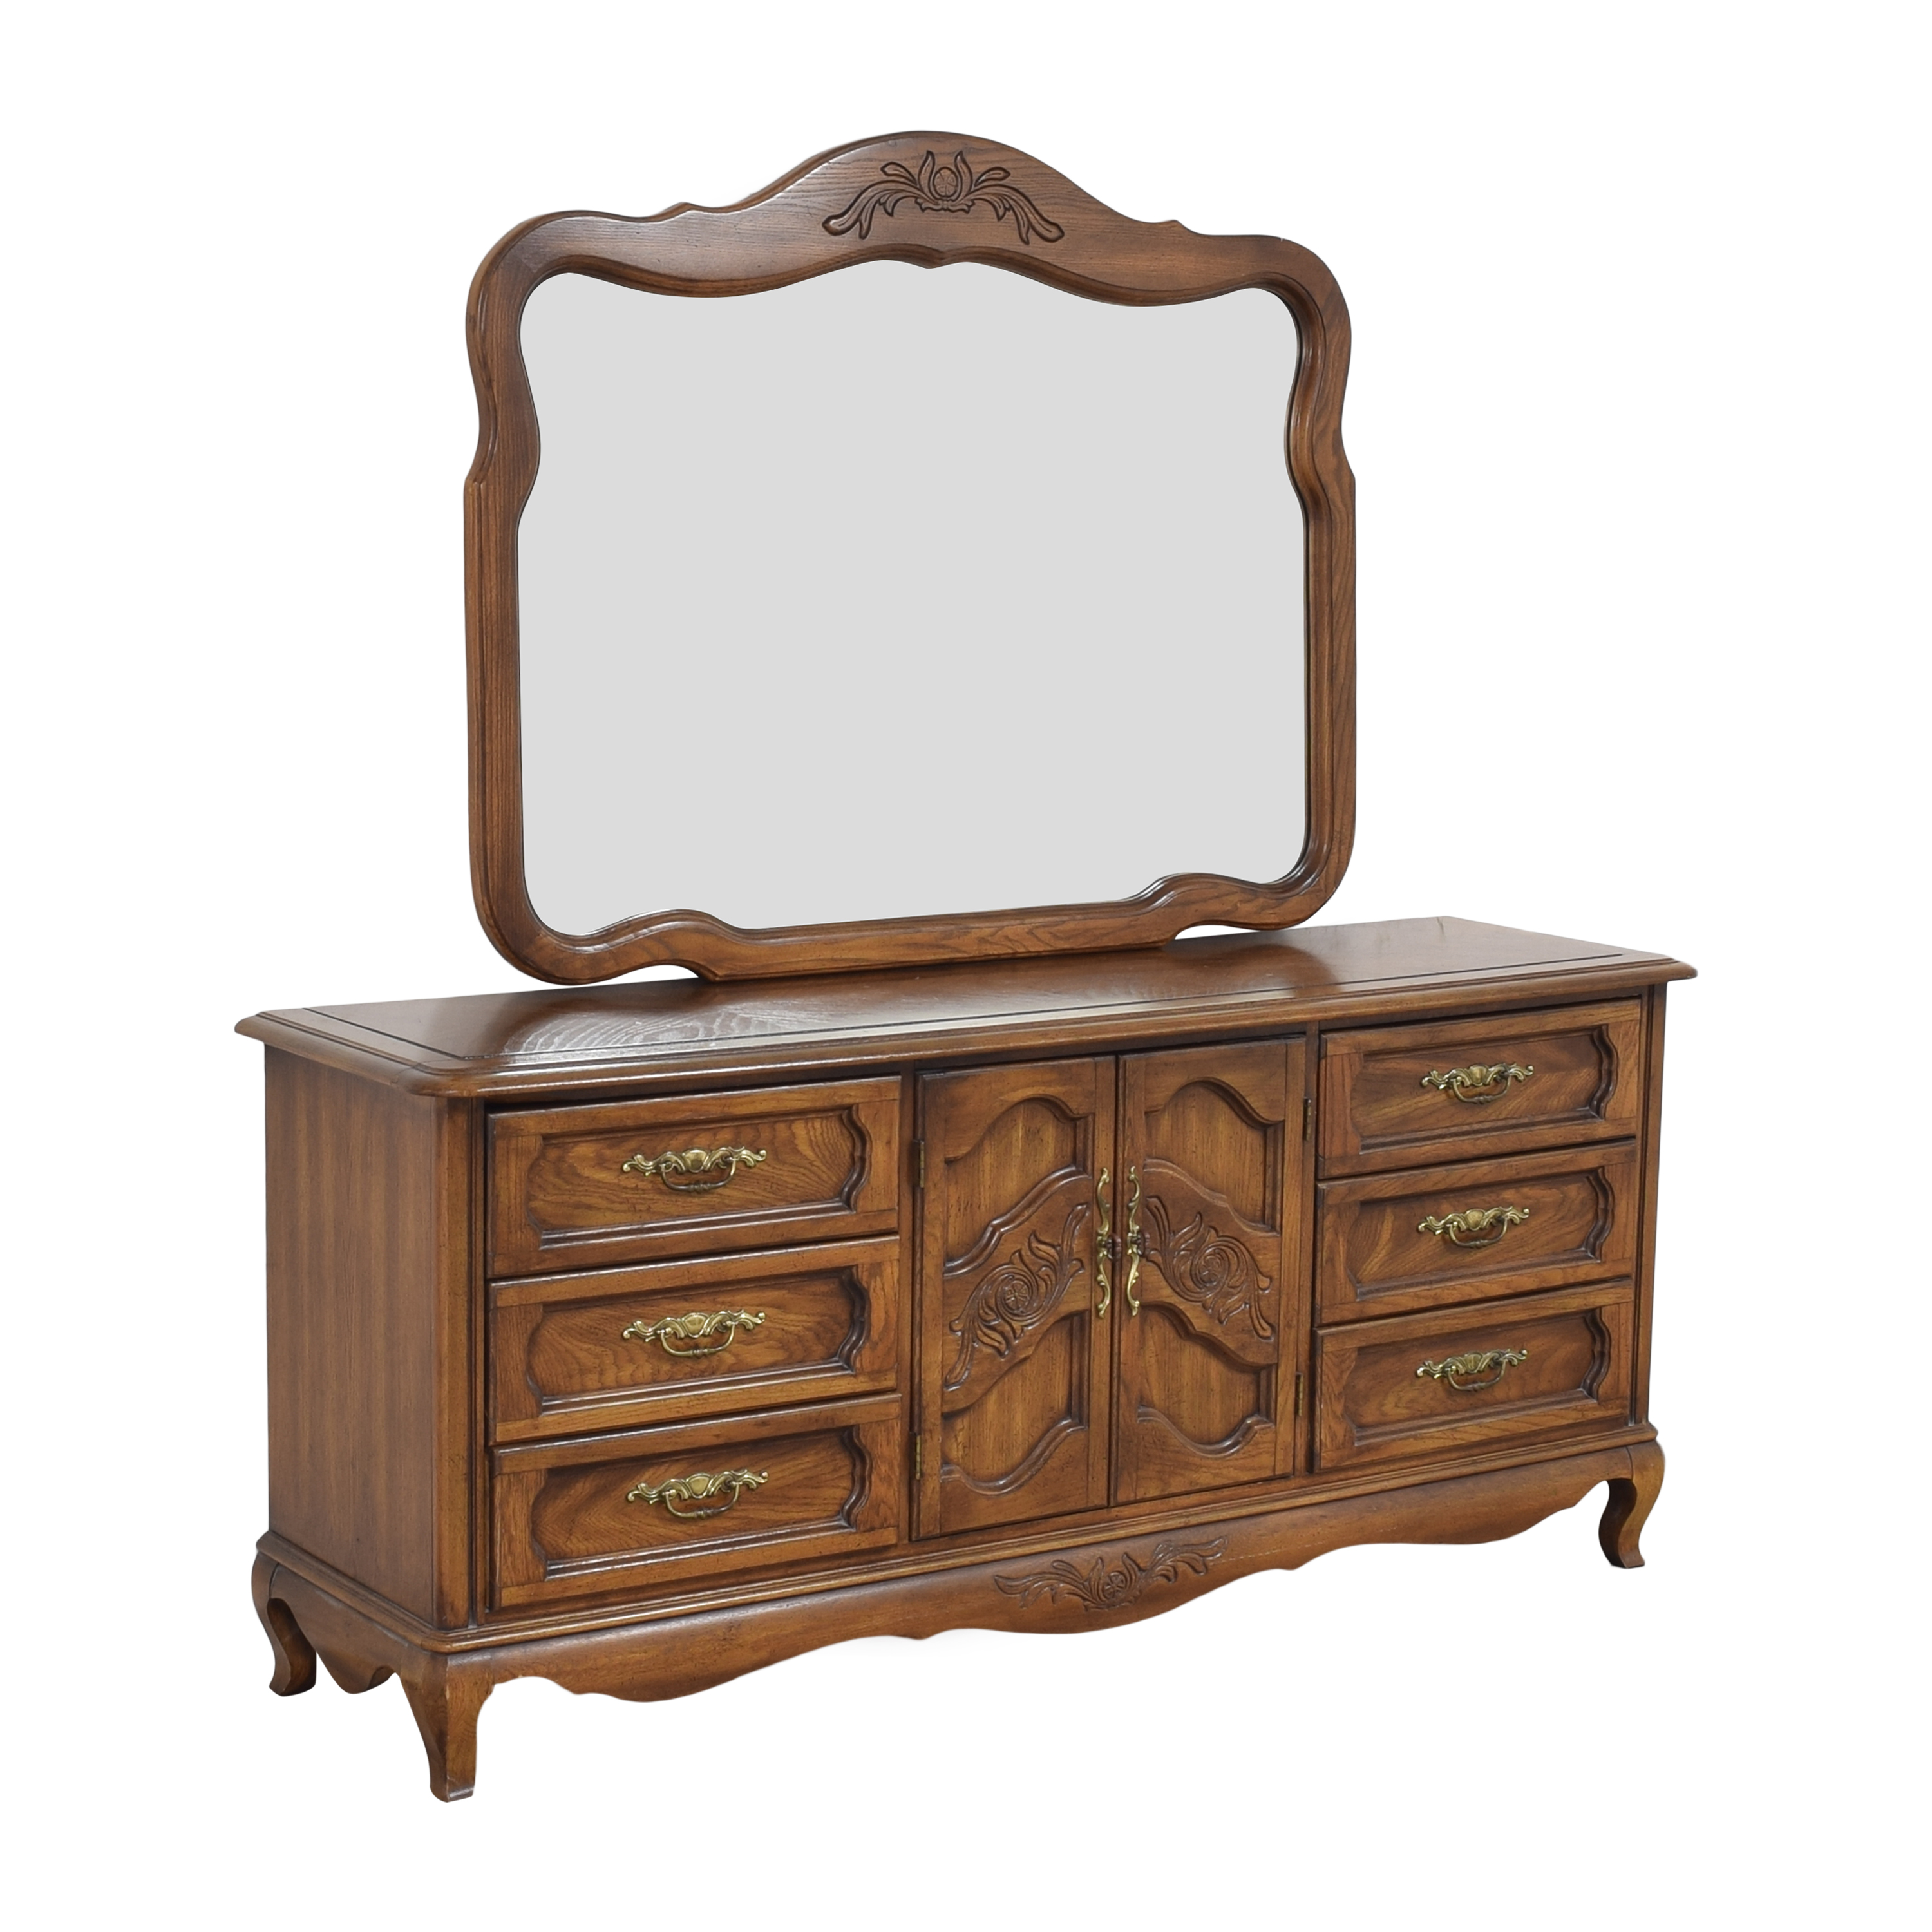 Huffman Koos Huffman Koos French Provincial Wide Dresser with Mirror nyc